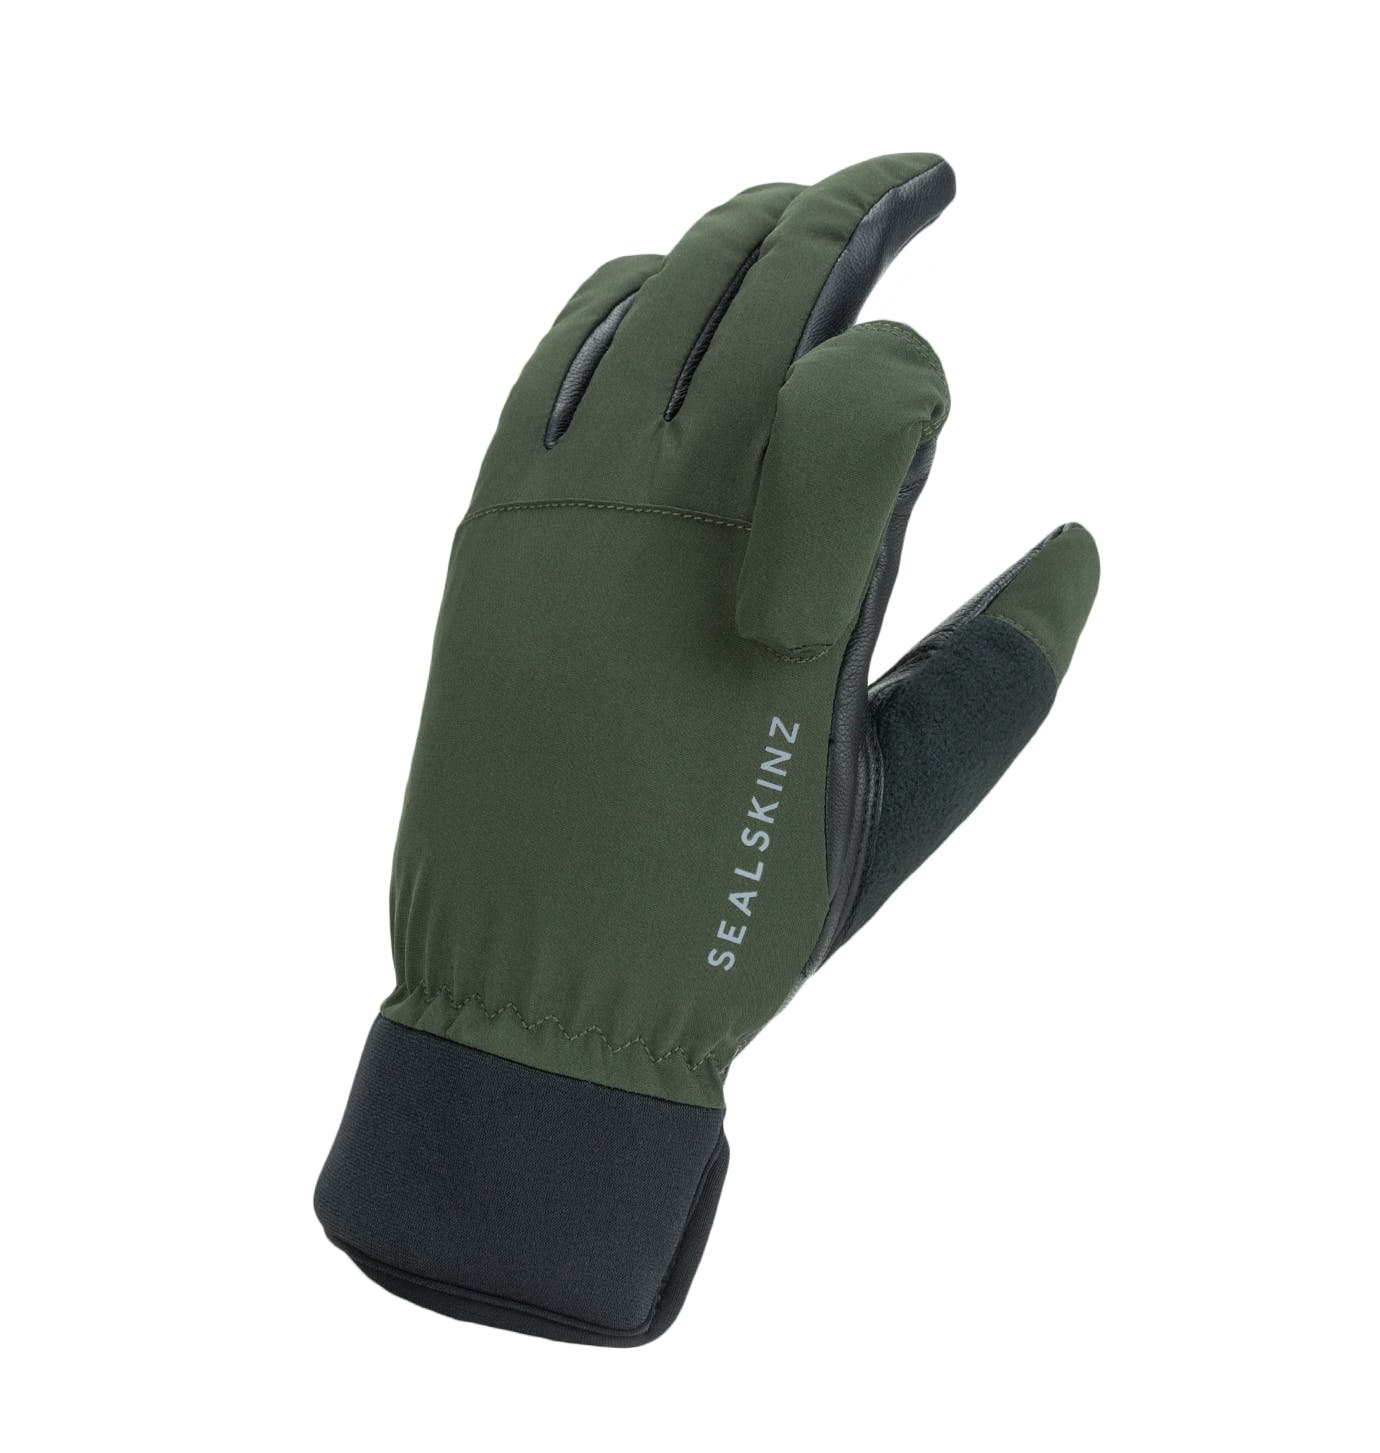 Waterproof Shooting Gloves